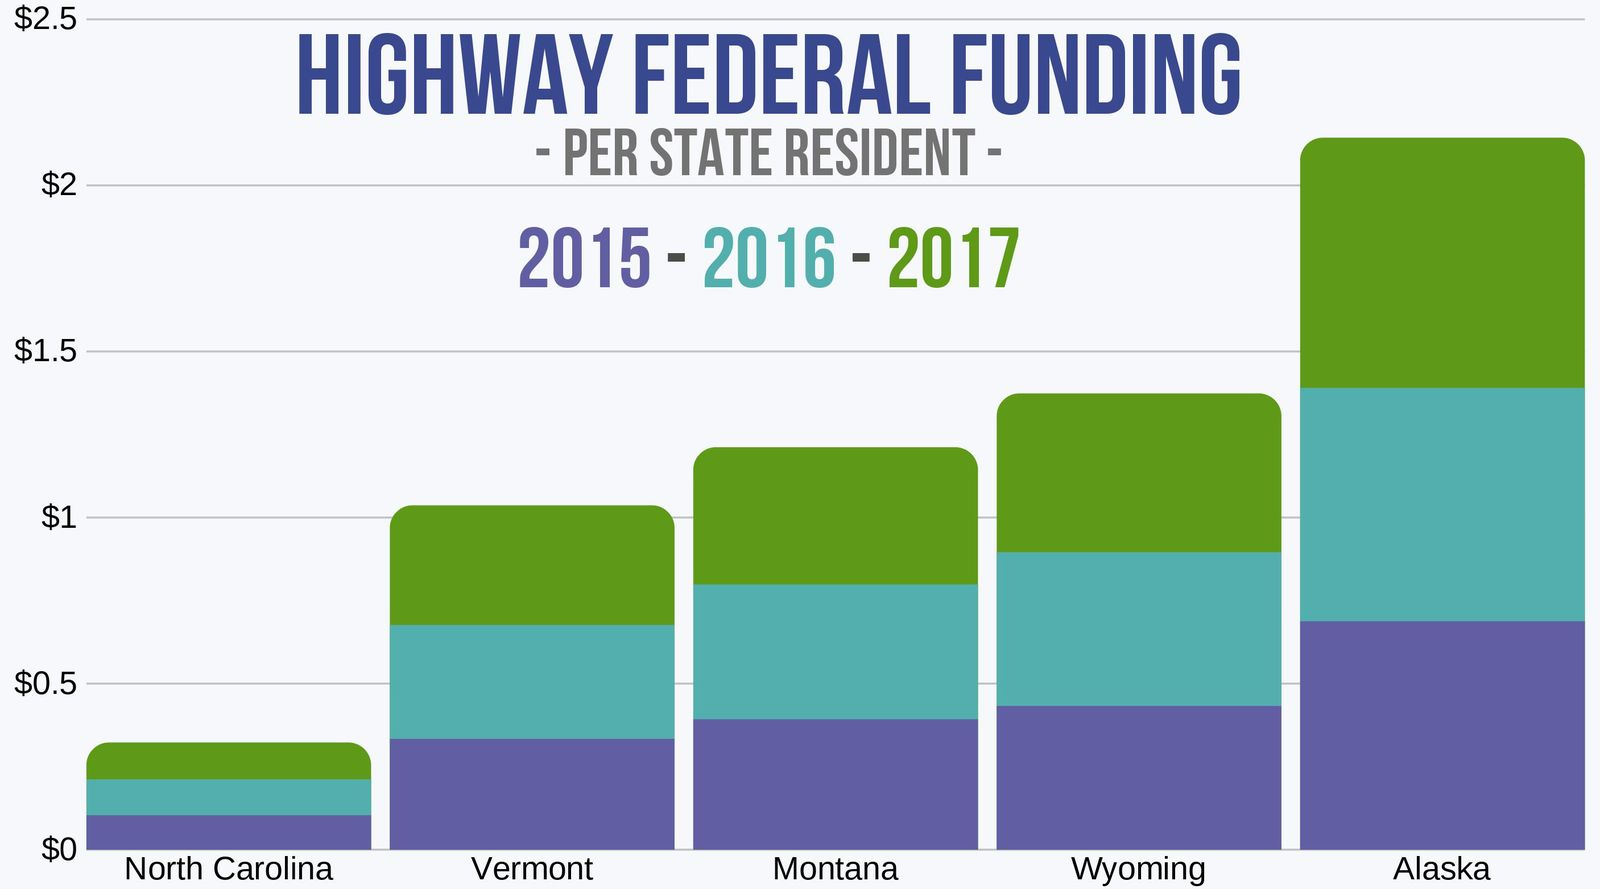 Federal Funding for Highways in 5 States